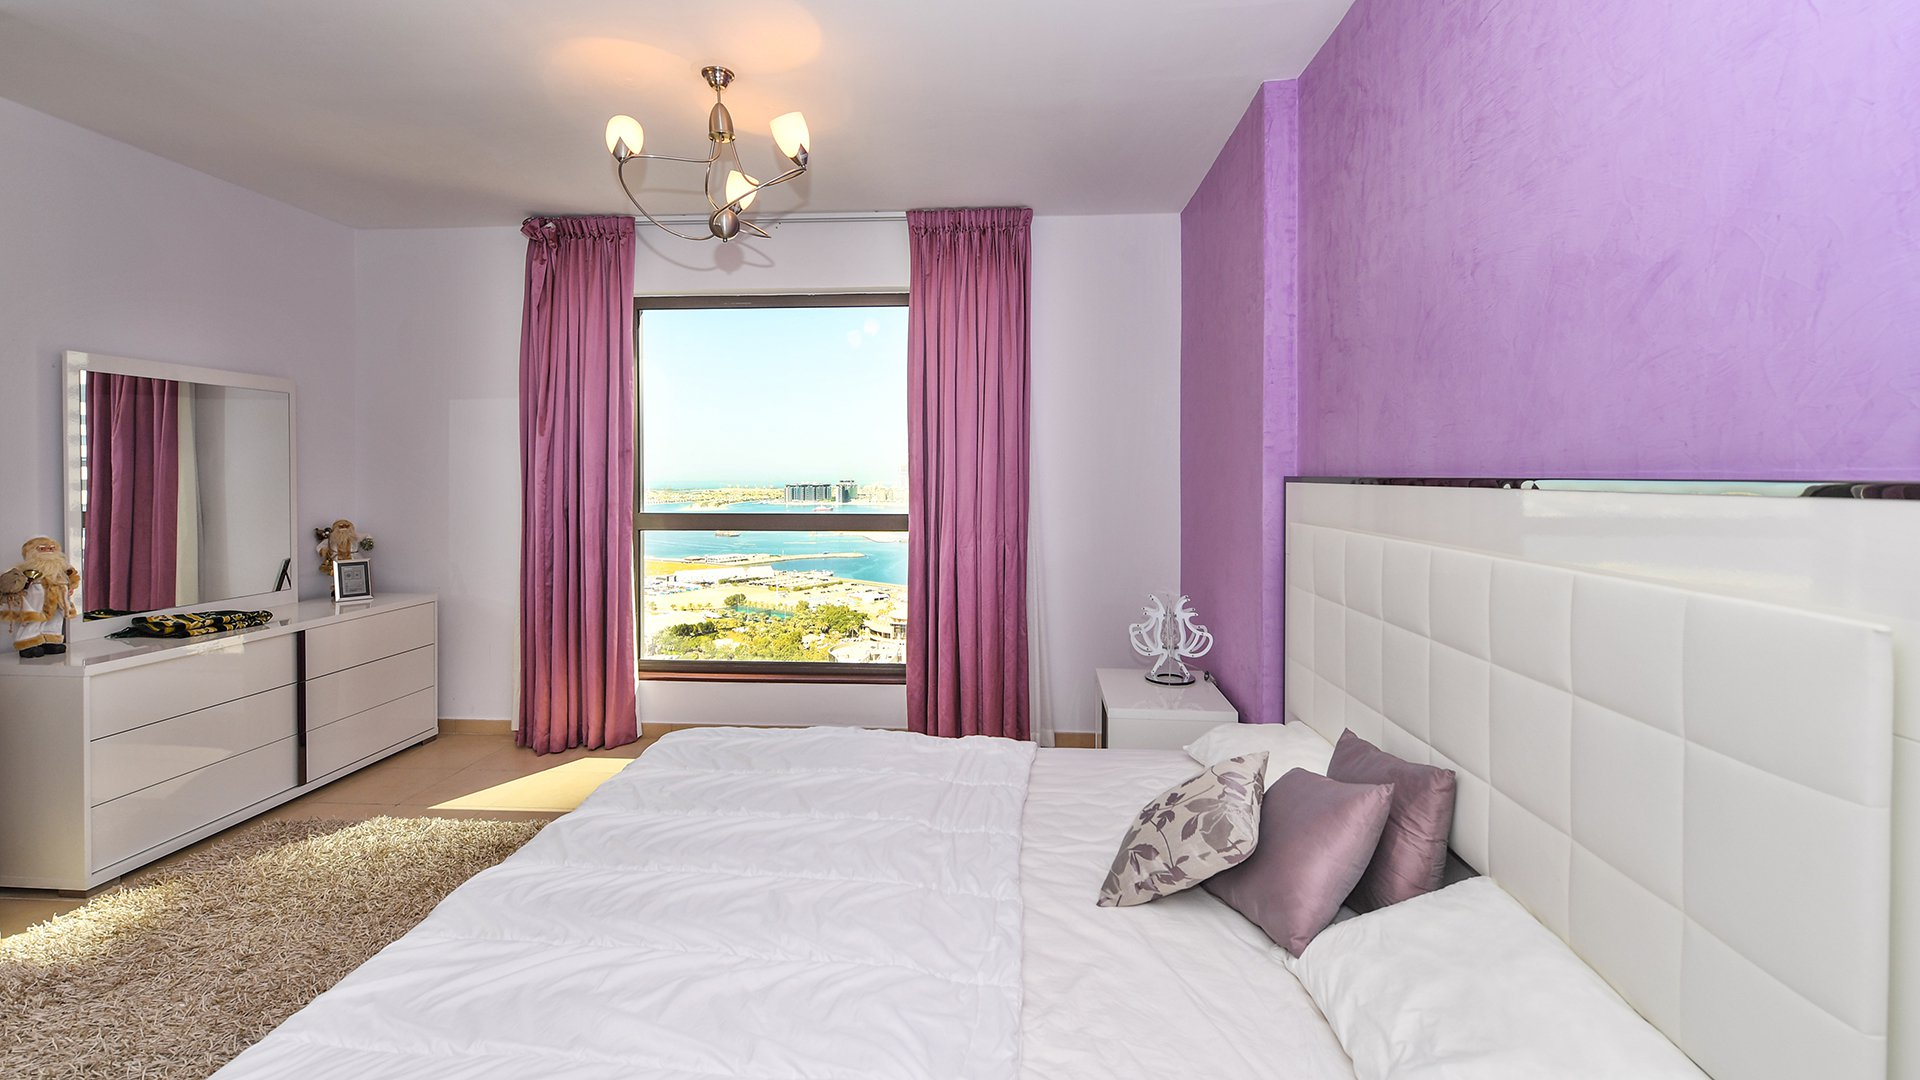 Jumeirah Beach Resid, Select a Category